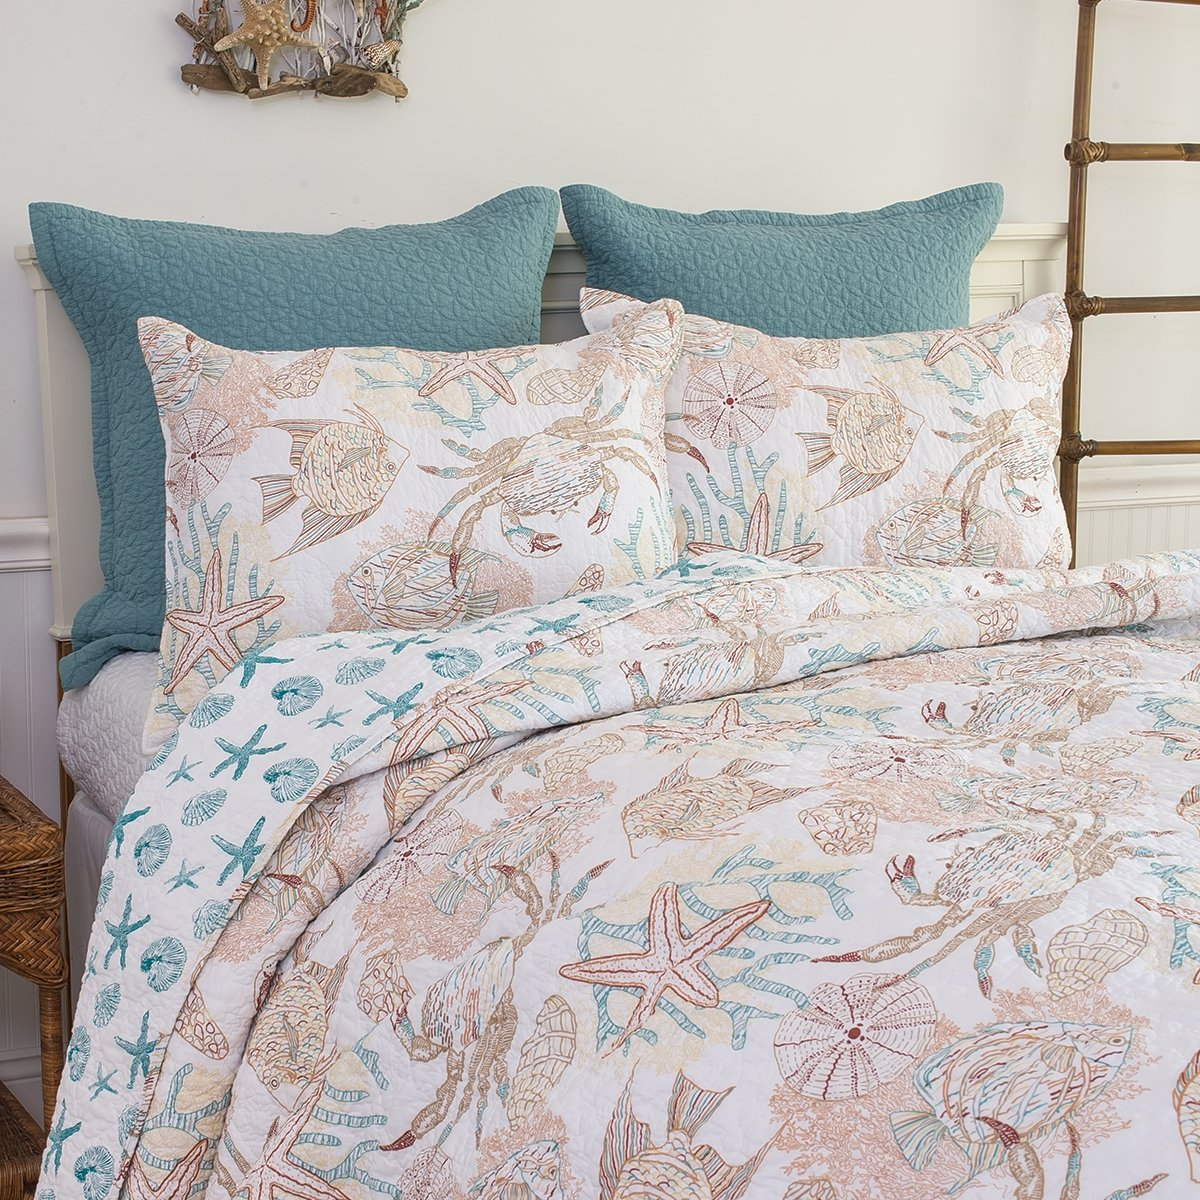 C&F Home Key Biscayne Quilt Set, Full/Queen, Tan